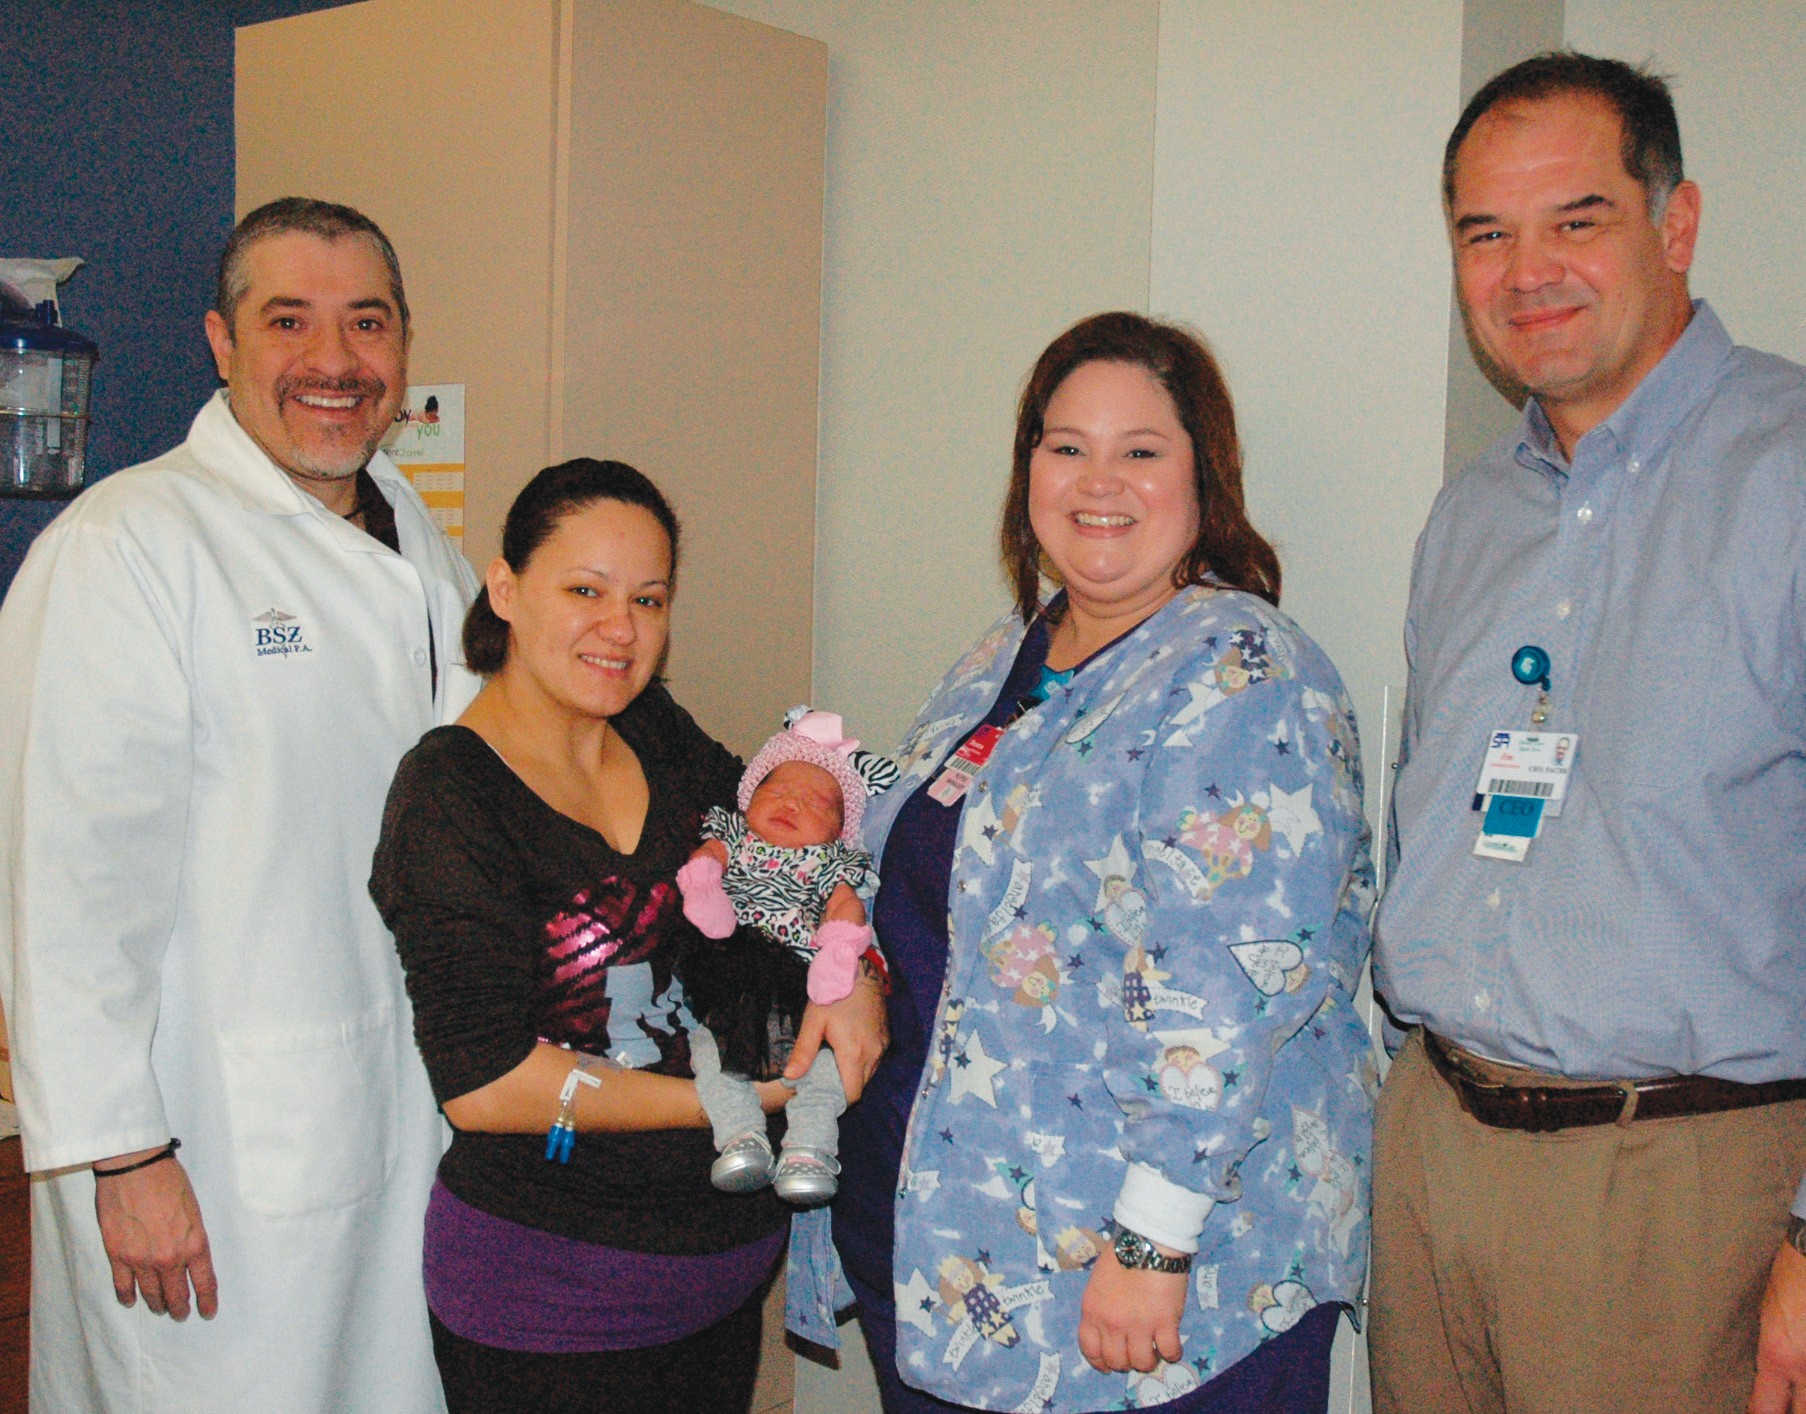 """South Texas Regional Medical Center welcomed their First Baby of 2013 on January 2. Dr. Benjamin S. Zertuche delivered Isela Love Rodriguez at 1:10 p.m.. She weighed six pounds and one ounce and was 20.5"""" long. Parents are Rusela Marie Lopez and Anthony Rodriguez. Isela has two big brothers– Teagan Henry Torres and Zayden Jay Lopez – waiting to greet her. Left to right are Dr. Zertuche, Rusela with Isela, Deanna Hughes, Assistant Director of Nursing and Jim Resendez, STRMC Chief Executive Officer."""